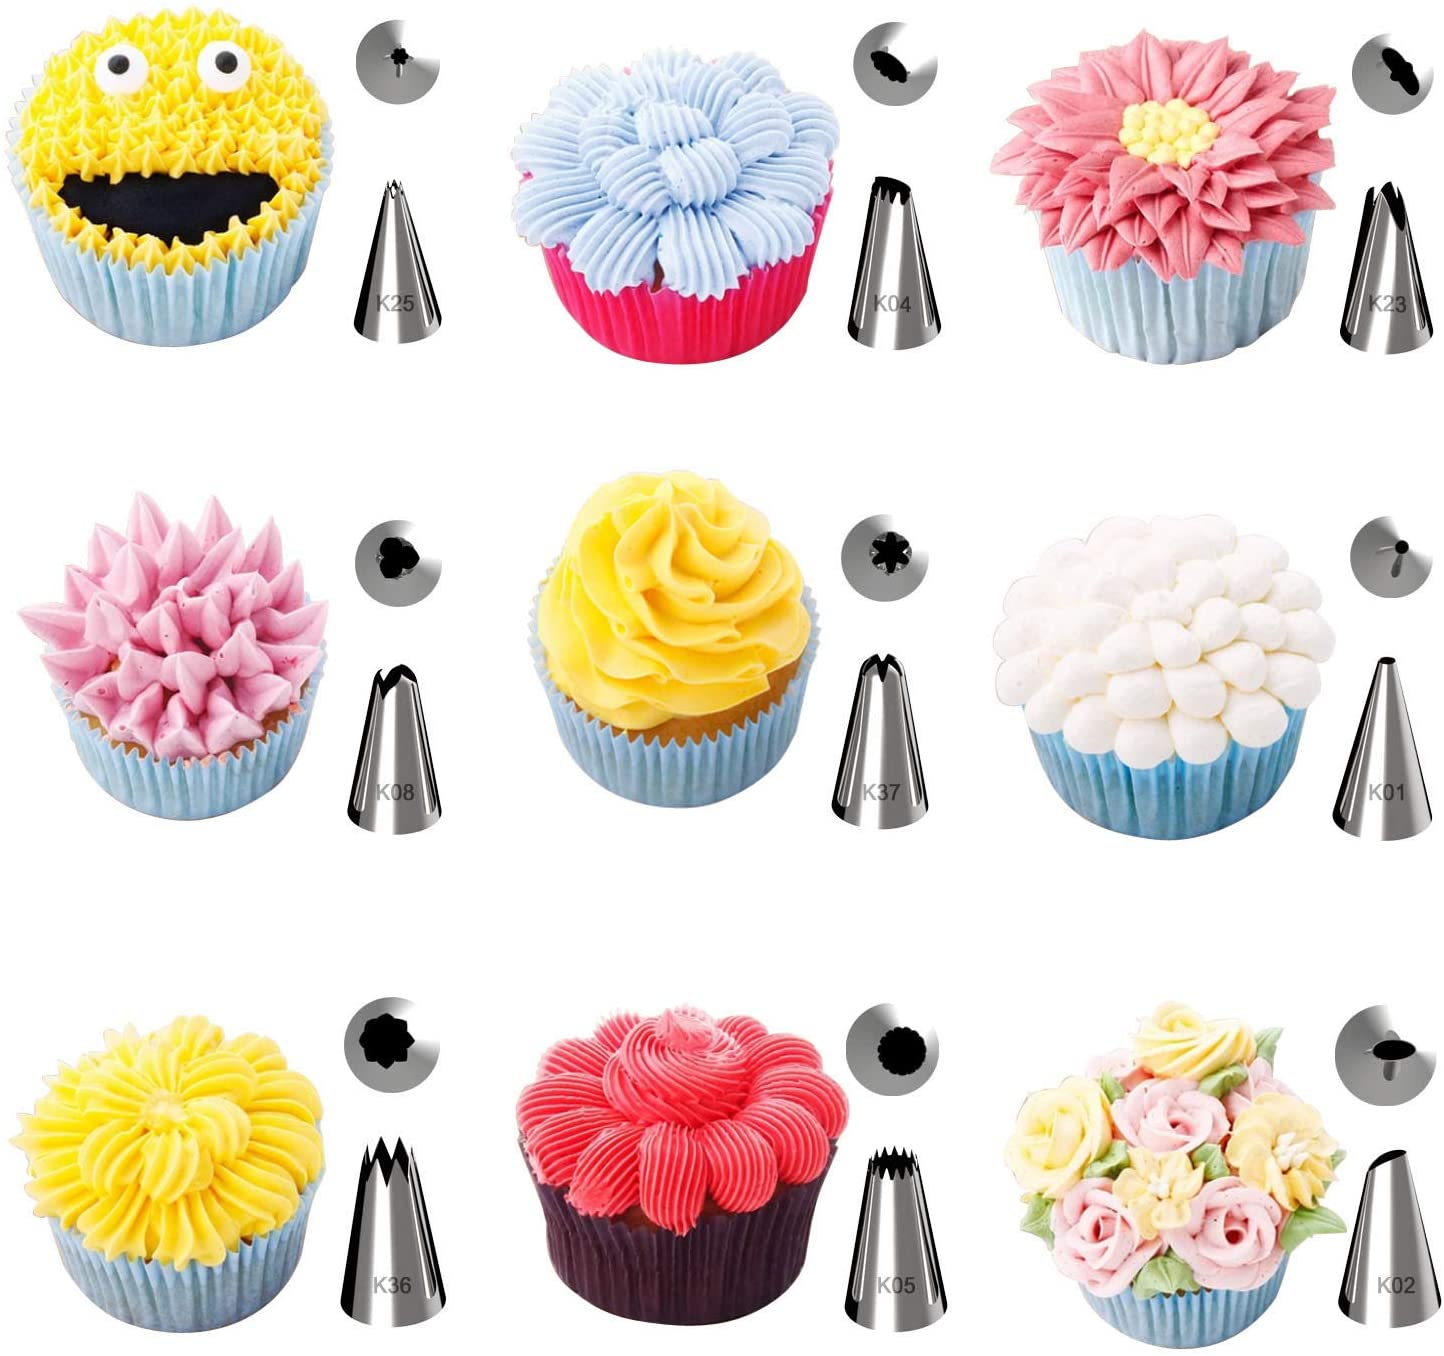 42 Piece Cake Decorating Kit Only $9.99 {Was $33.99}